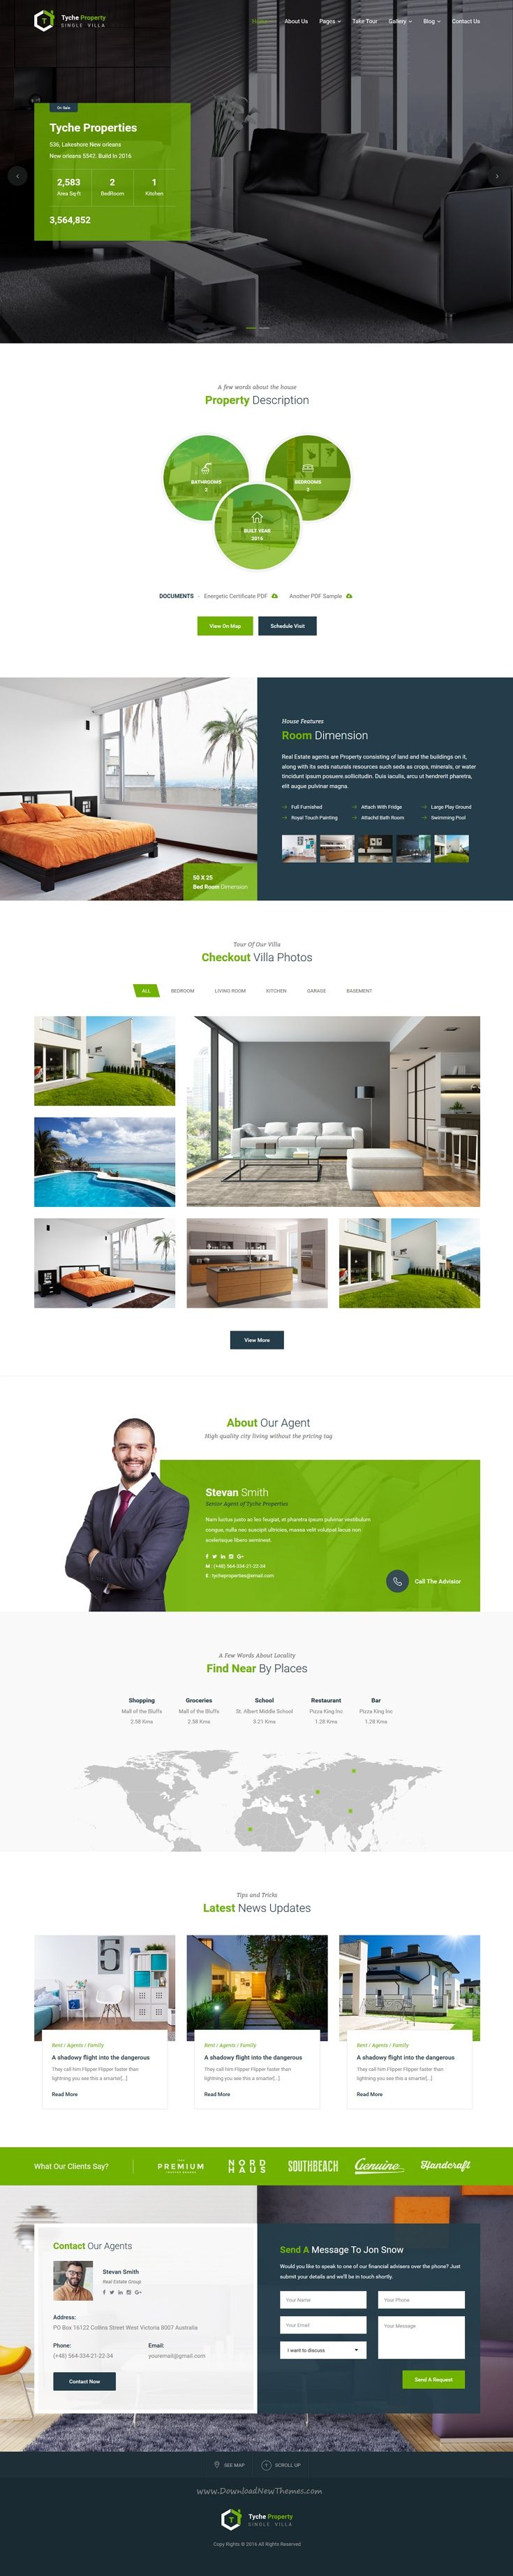 tyche properties single property real estate html template real estate website designclean - Apartment Website Design